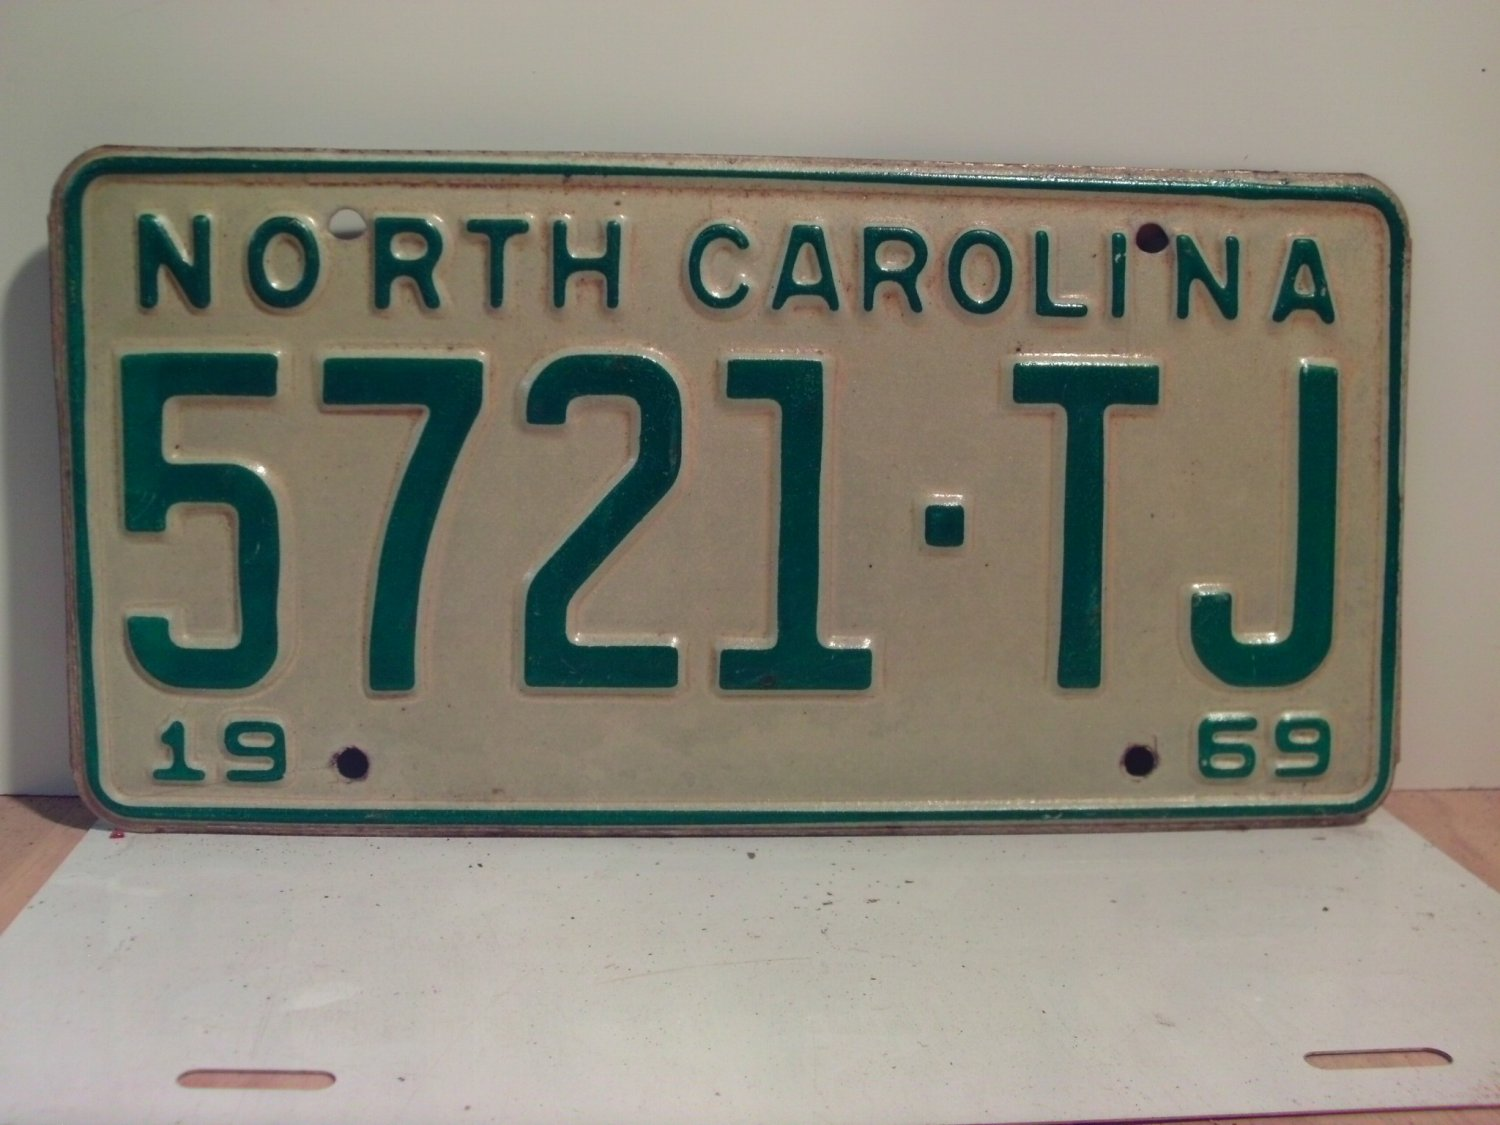 1969 North Carolina NC Truck License Plate 5721-TJ VG